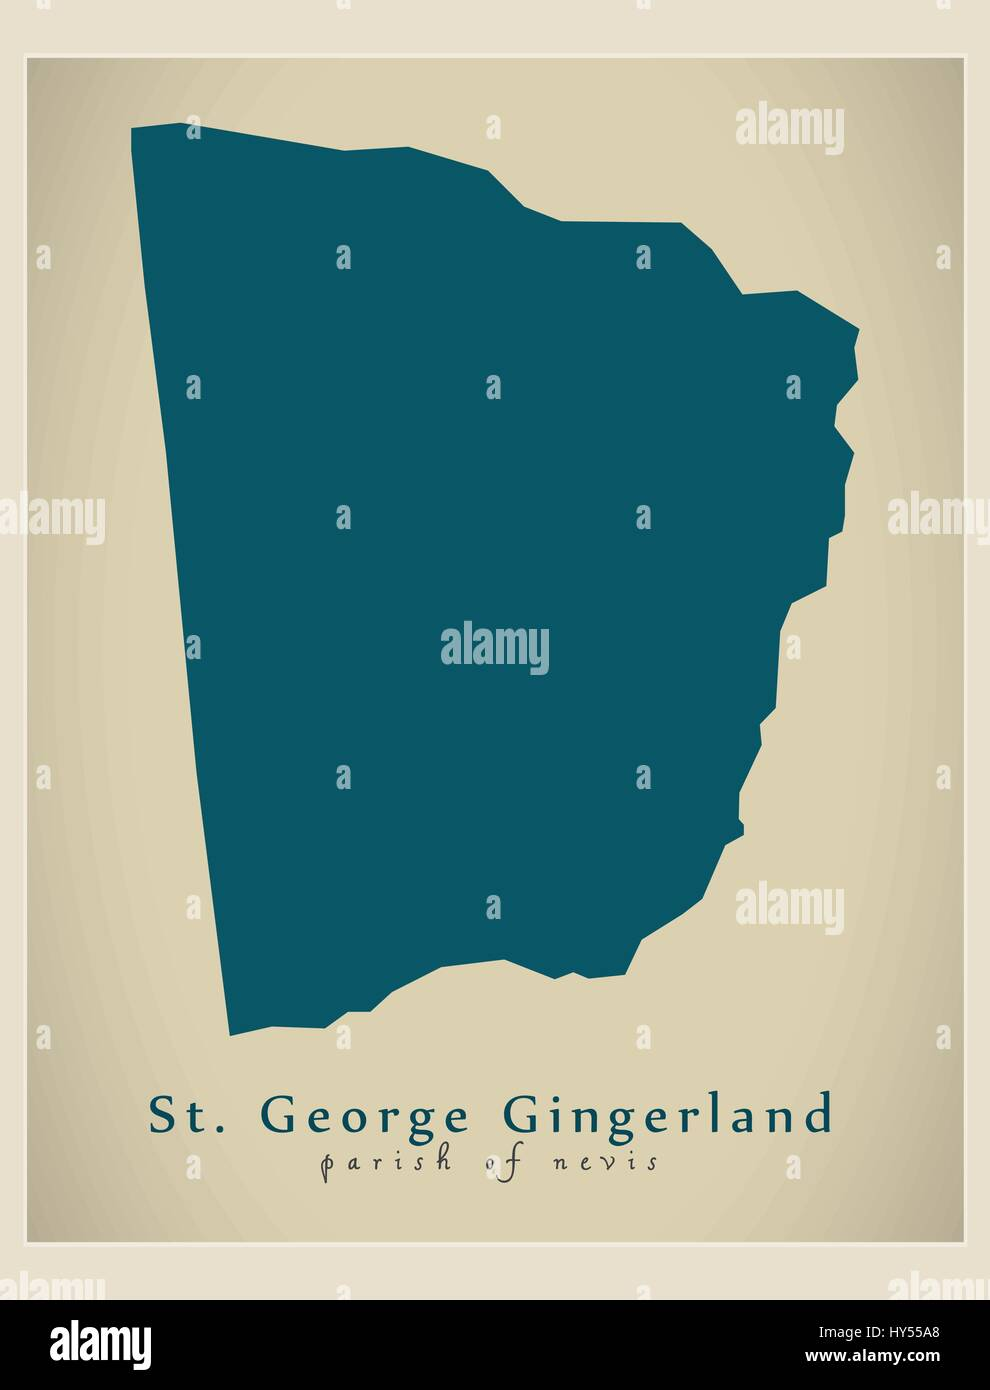 Modern Map - St. George Gingerland KN - Stock Vector